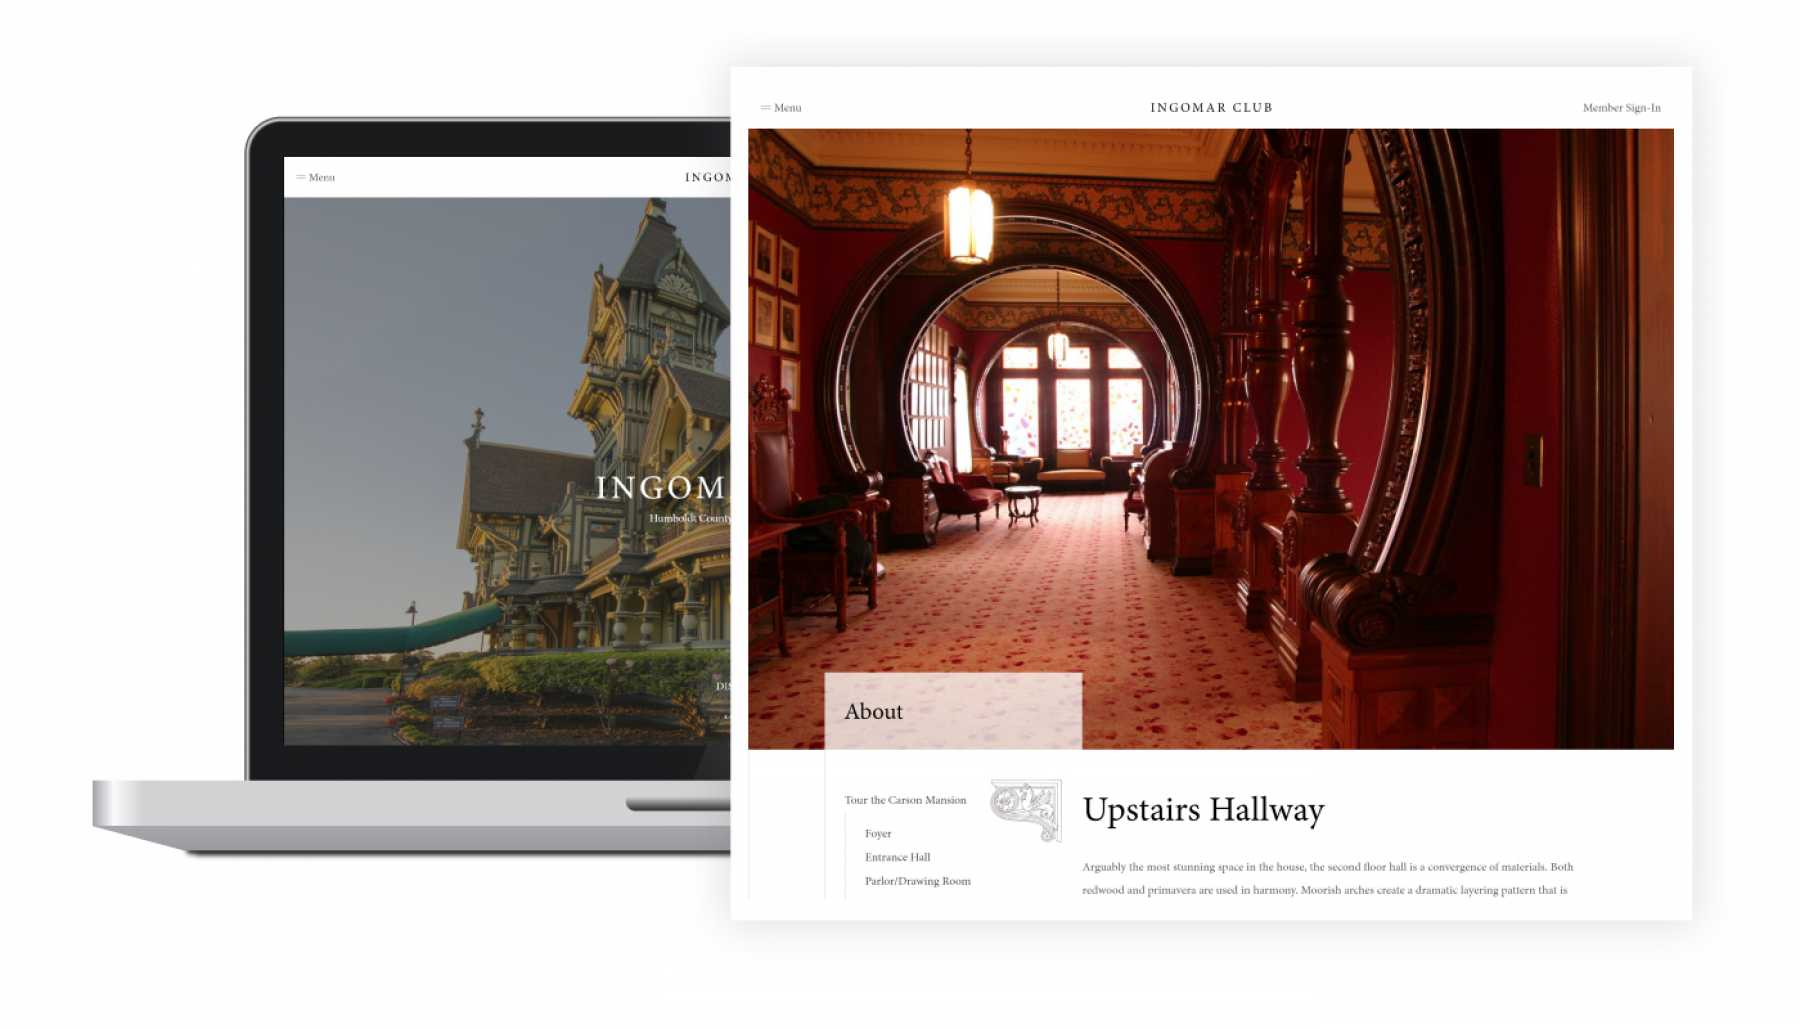 Image displaying the Carson Mansion featured on the Ingomar Club Website